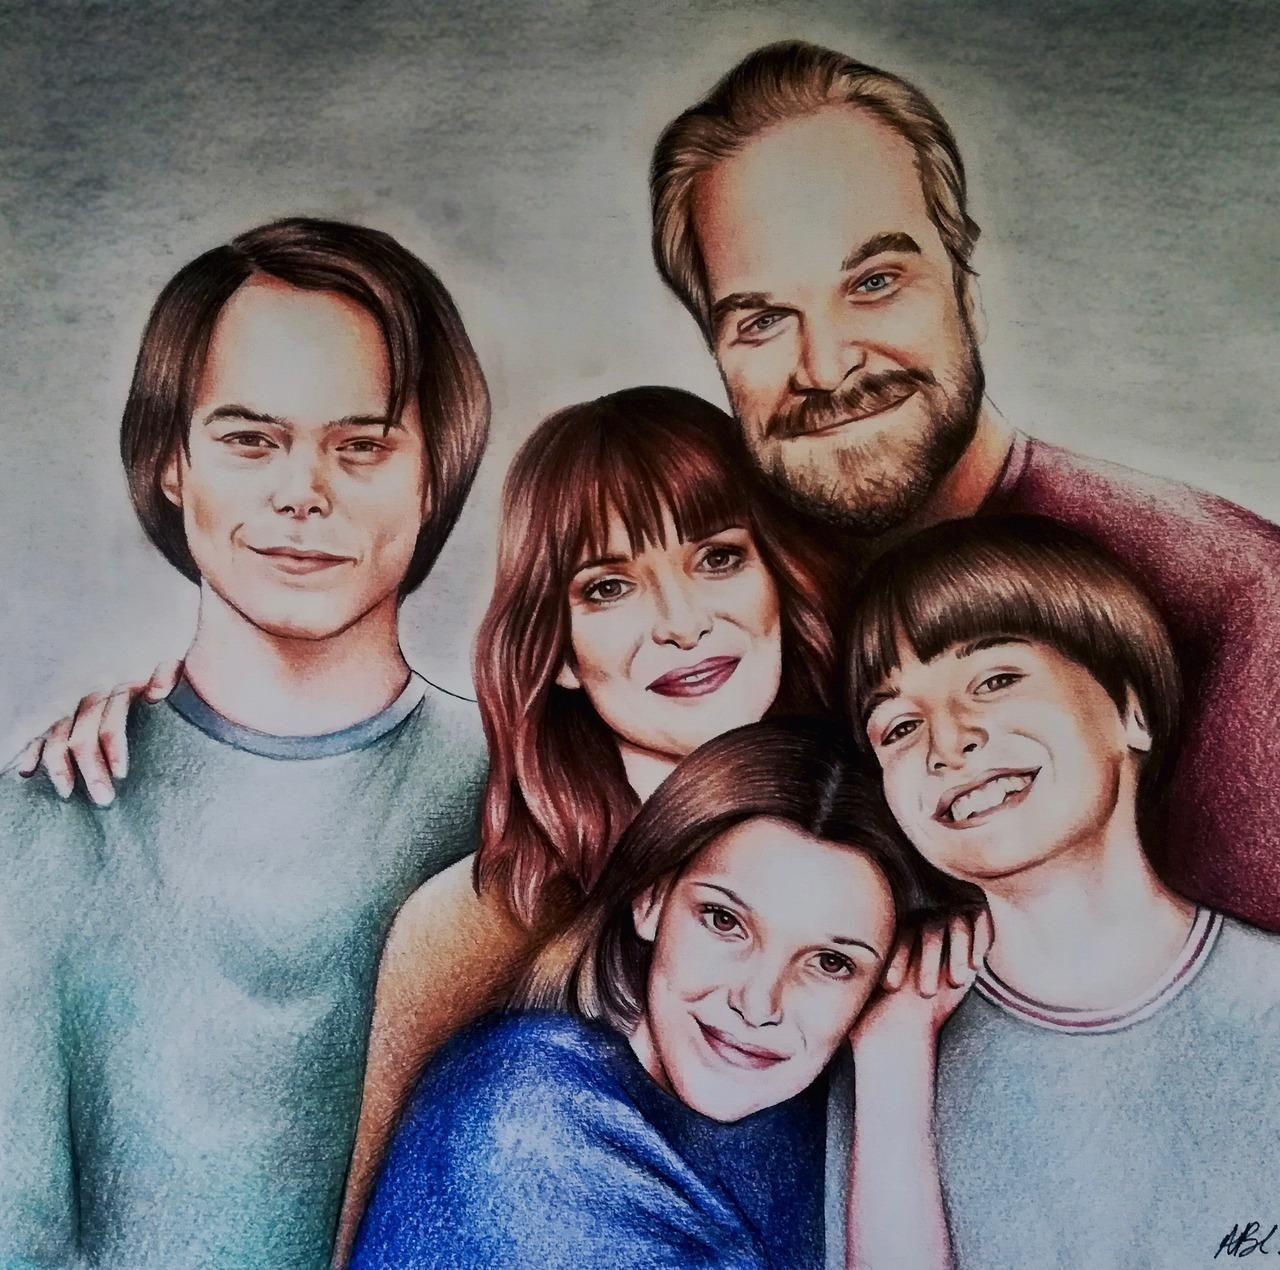 New combined family in S3? Would be heartwarming.